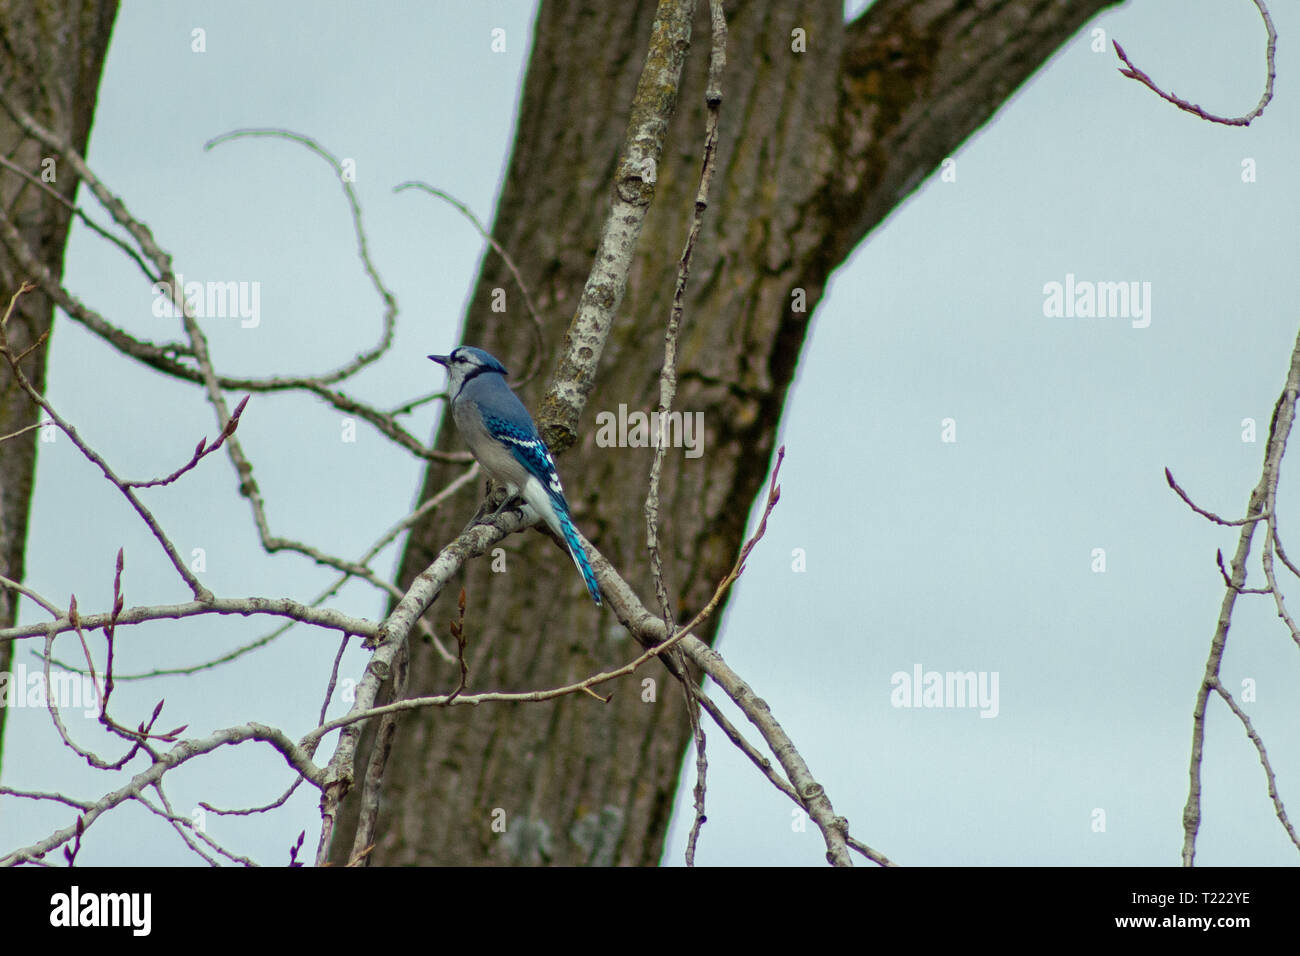 A Blue Jay (Cyanocitta cristata) sitting a tree in winter. shot in Southern Ontario. Stock Photo